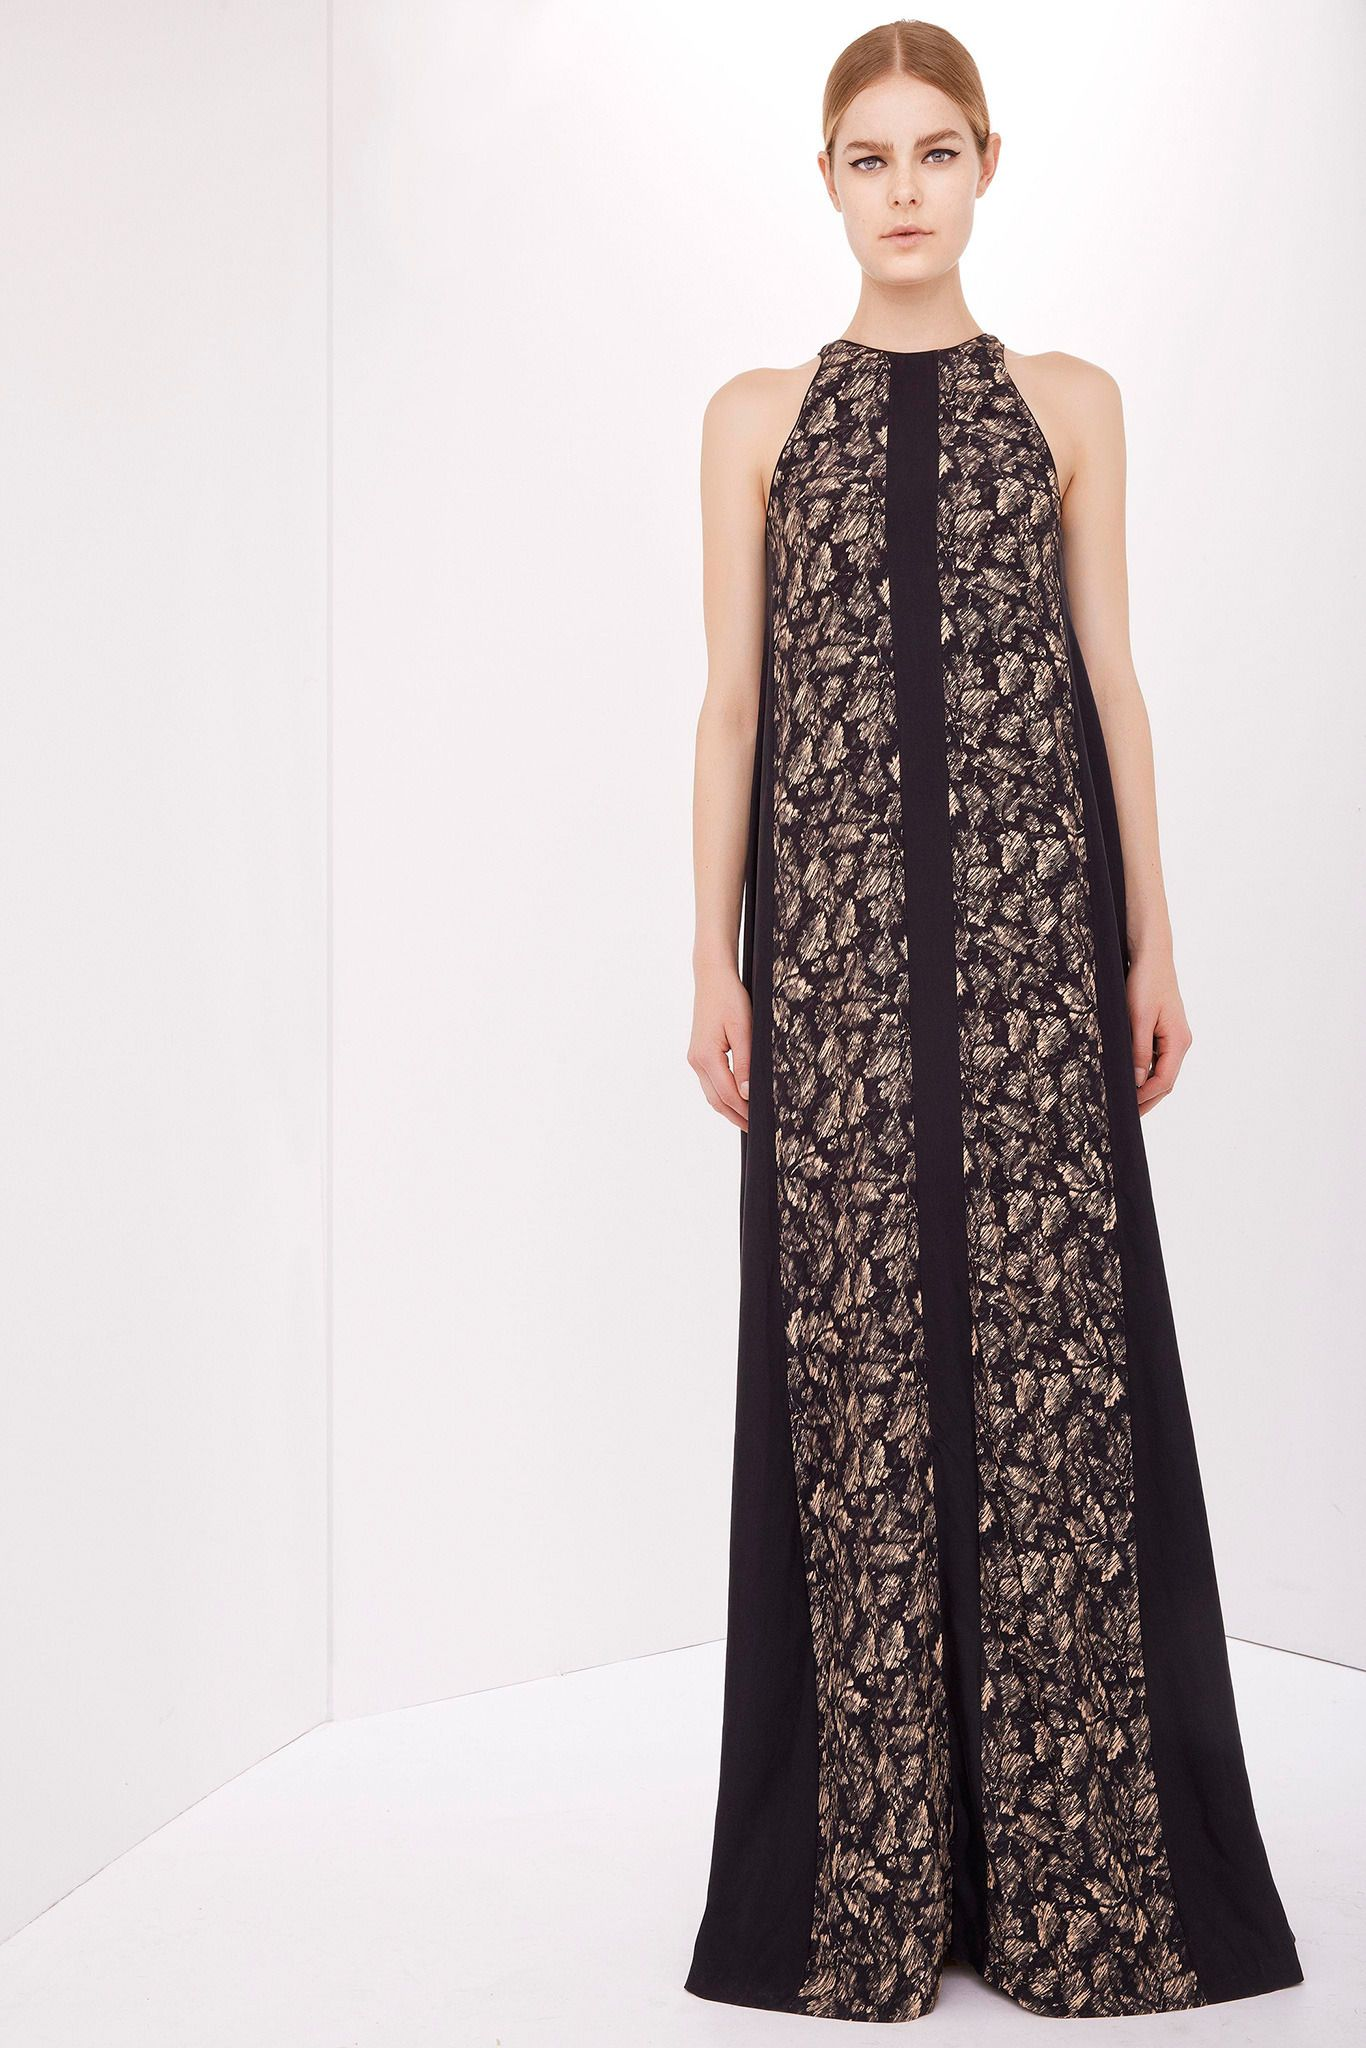 Long-Maxi-Dresses-For-Spring- | Awesome Long Maxi Dresses Designs ...